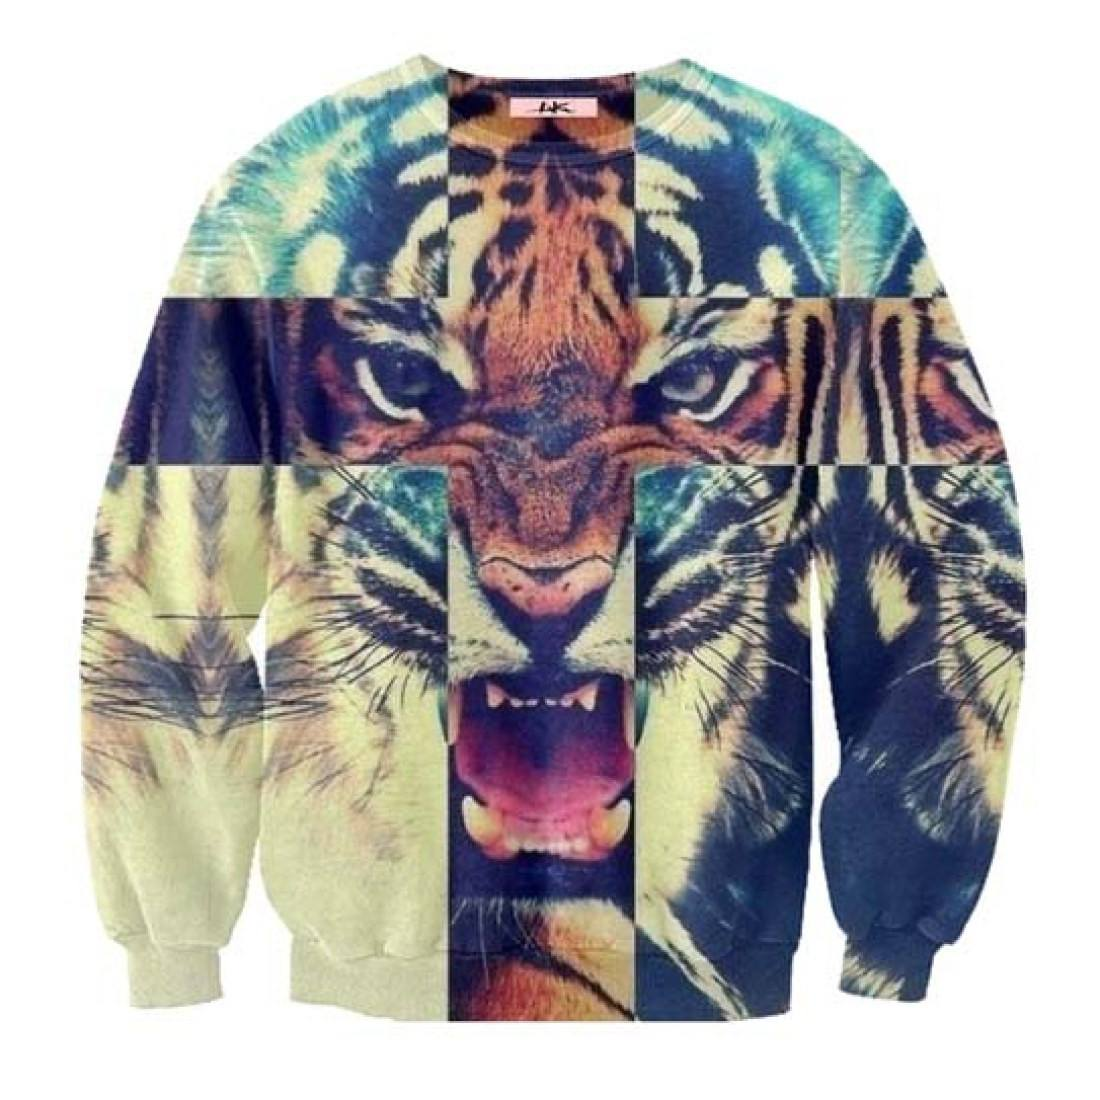 Snow Bengal Tiger Cross Face Graphic Print Unisex Sweatshirt Sweater